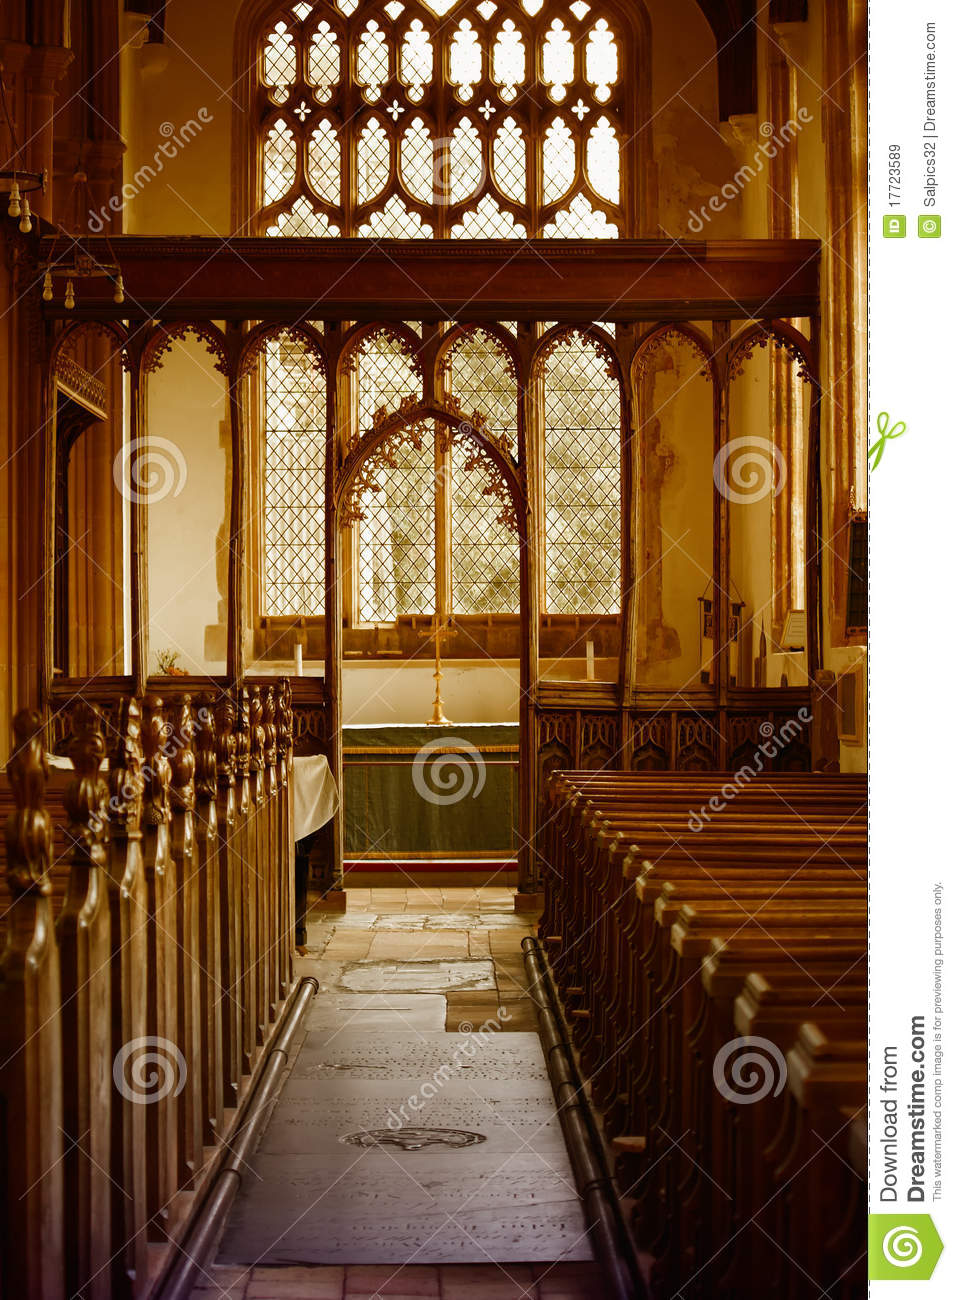 Inside A Small Church Stock Image Image Of Ornate Floor